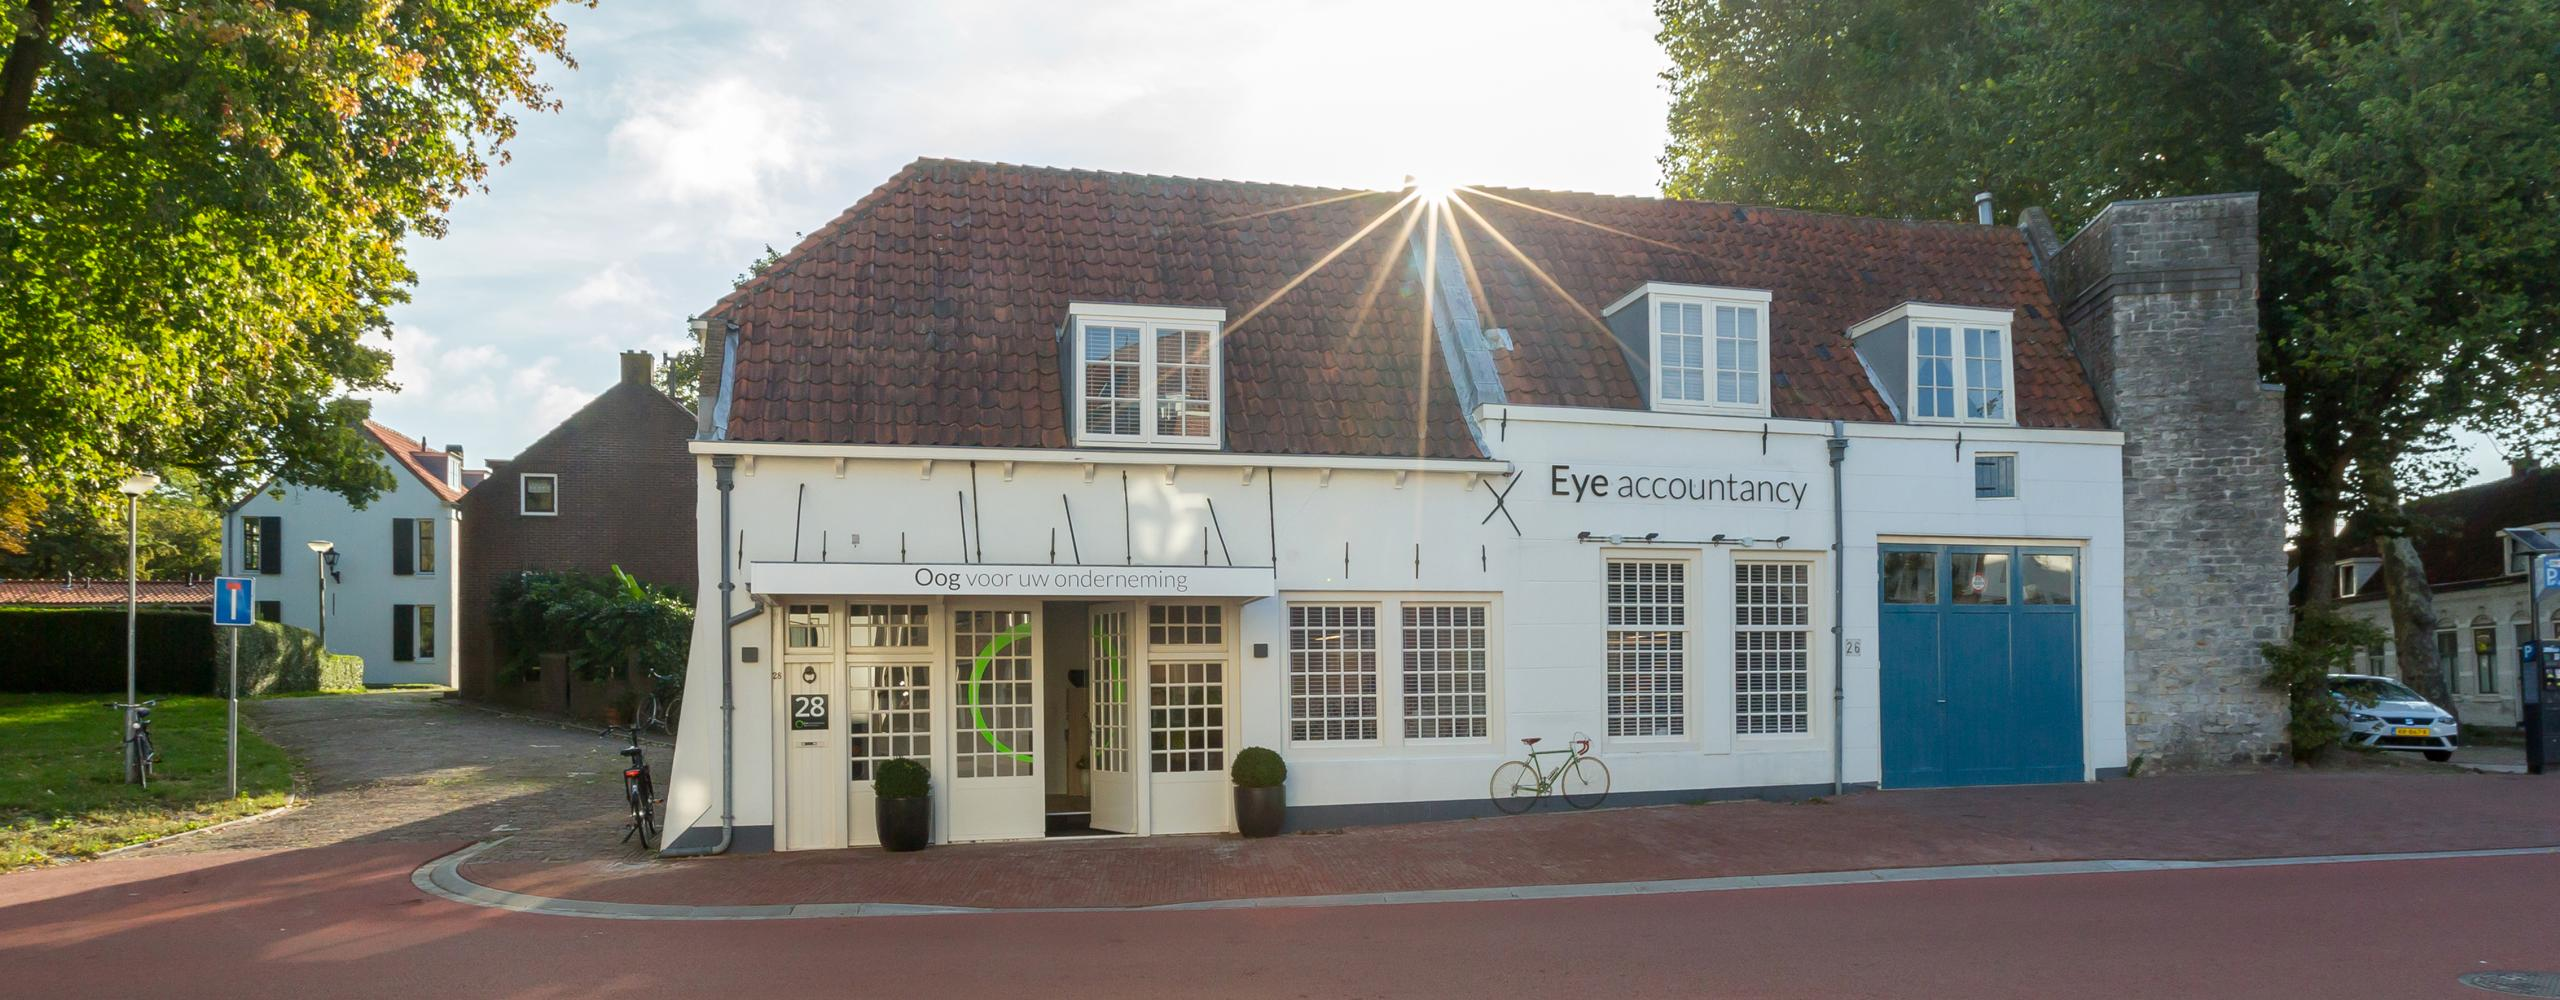 Eye accountancy